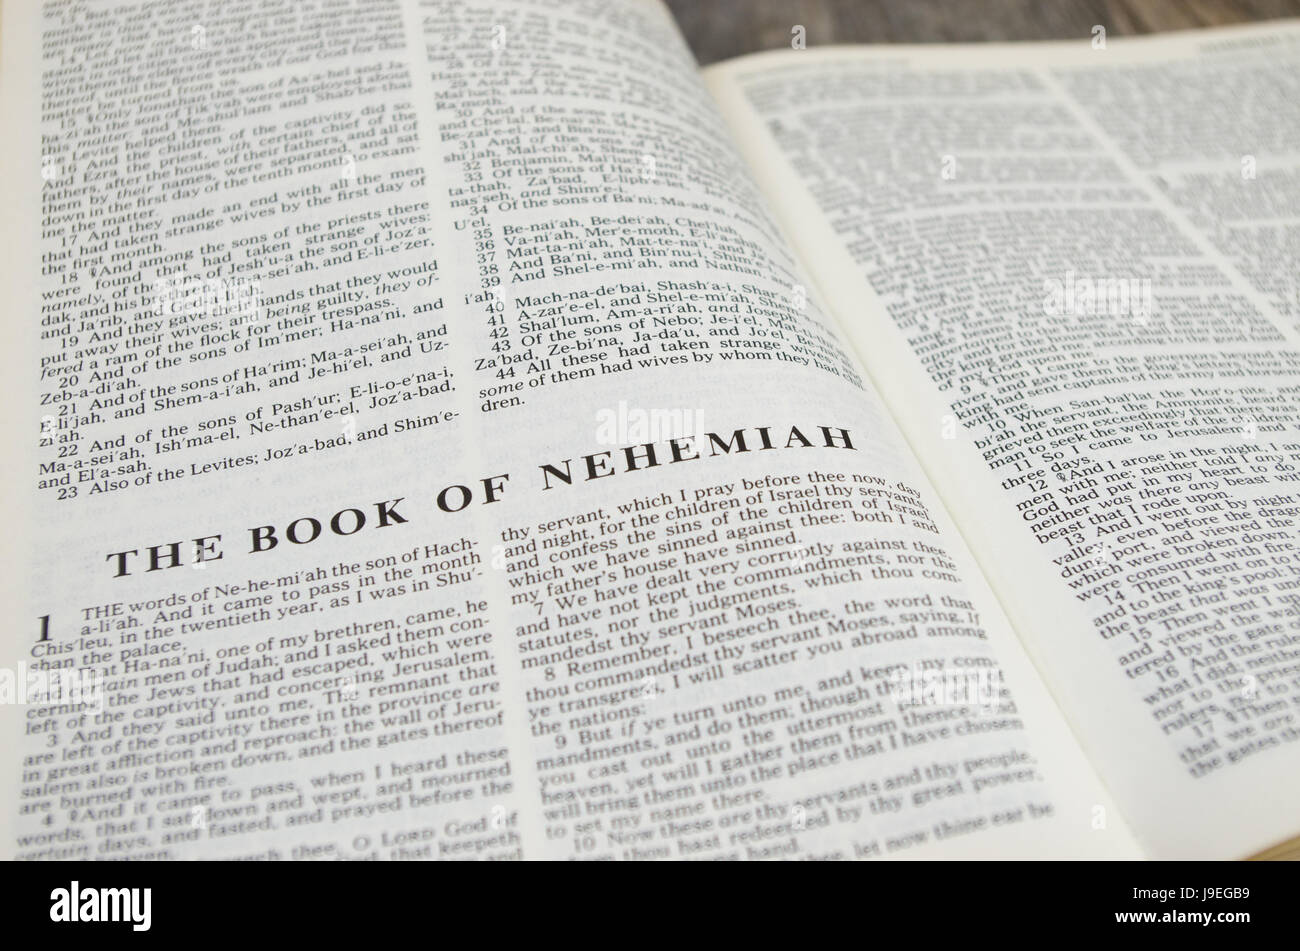 Title page for the book of Nehemiah in the Bible – King James Version - Stock Image